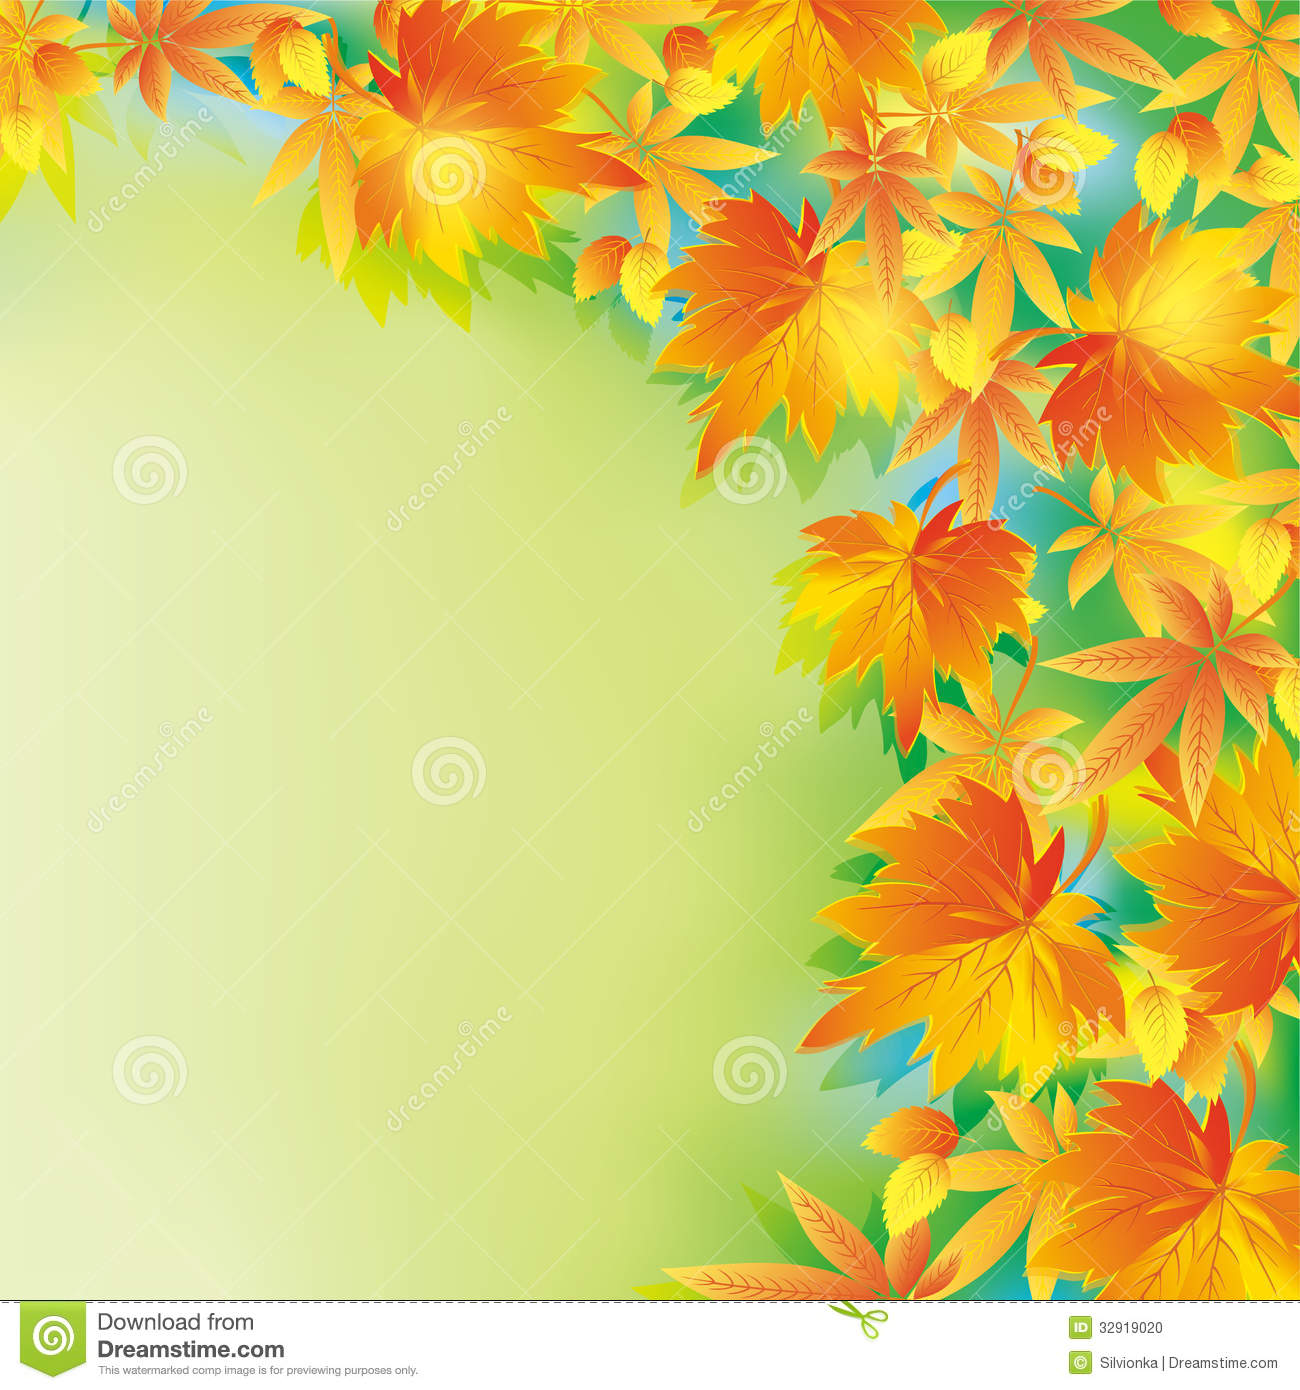 Hd Wallpaper Texture Fall Harvest Beautiful Autumn Background With Leaf Fall Stock Photo